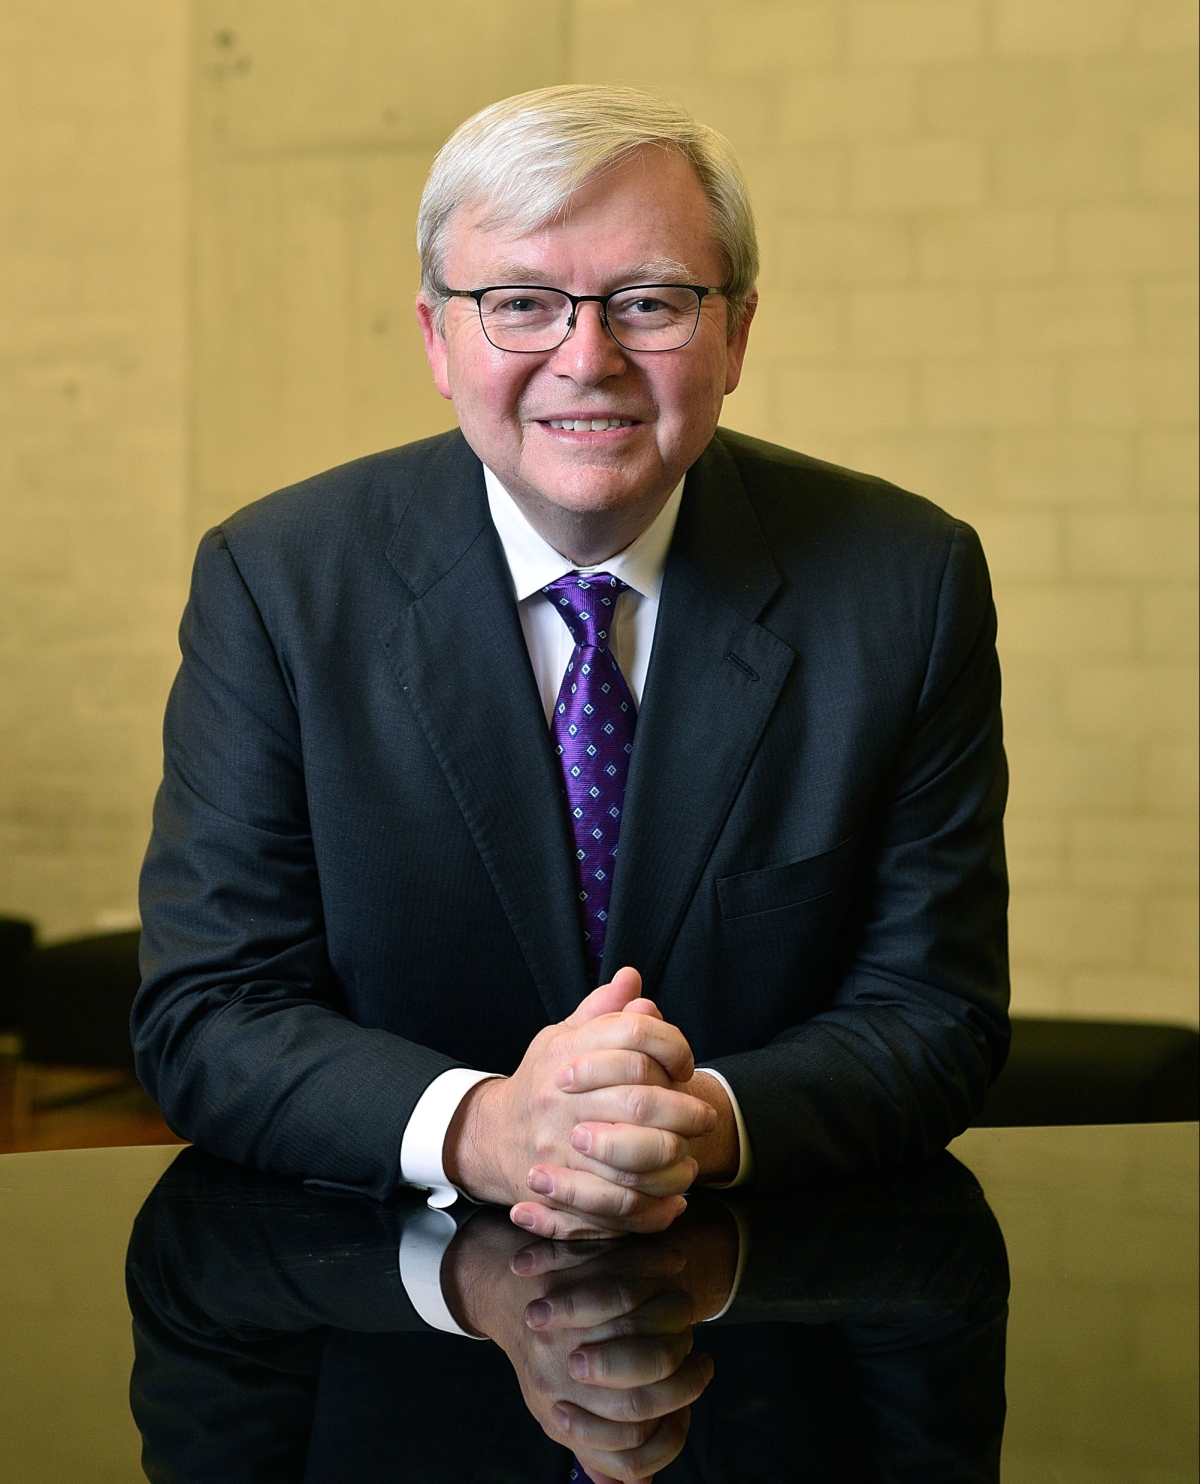 Asia Society Announces Appointment of The Honorable Kevin Rudd as President and Chief Executive Officer